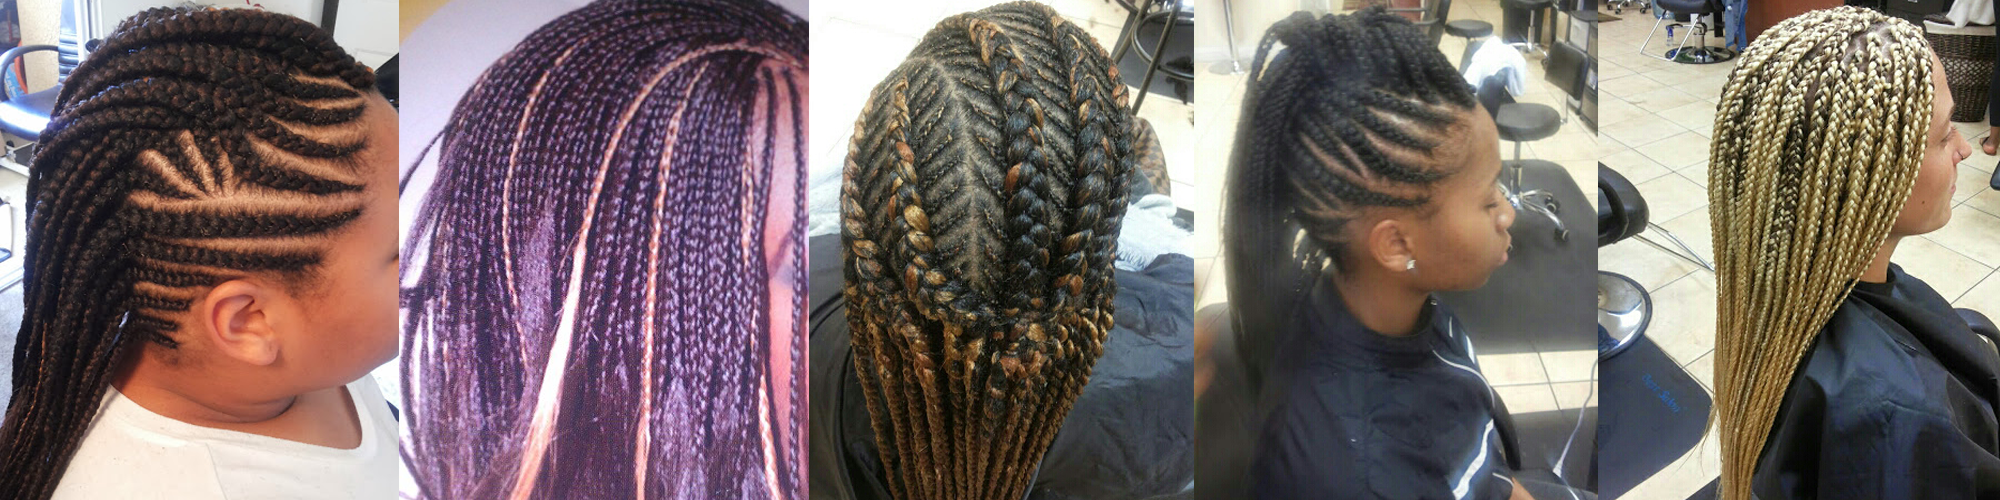 Hair Braiding Services Rendered in Las Vegas, NV